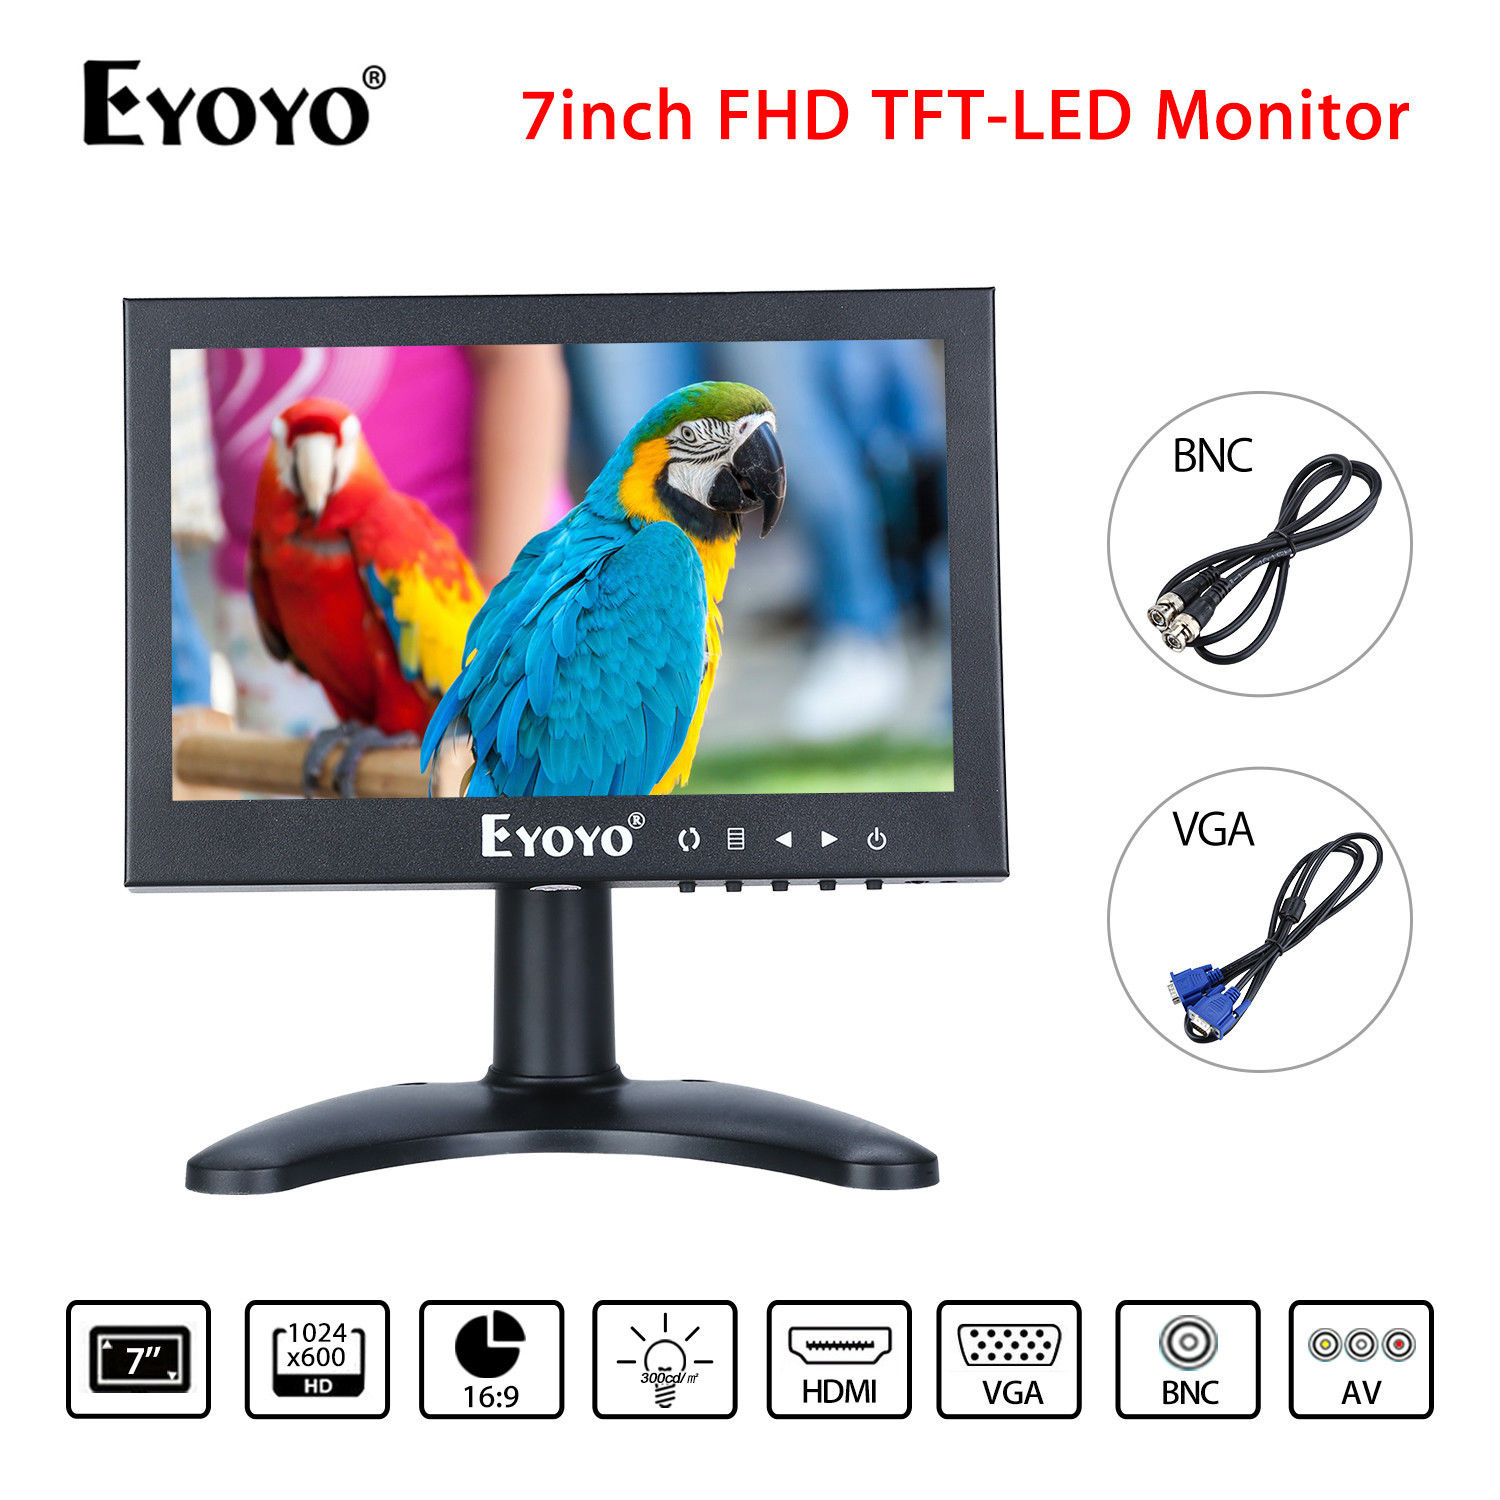 EYOYO 7'' FHD TFT LCD Screen 75degree HDMI BNC VGA AV Video Monitor For CCTV PC DVD DVR Security Camera TV 8 inch lcd monitor color screen bnc tv av vga hd remote control for pc cctv computer game security